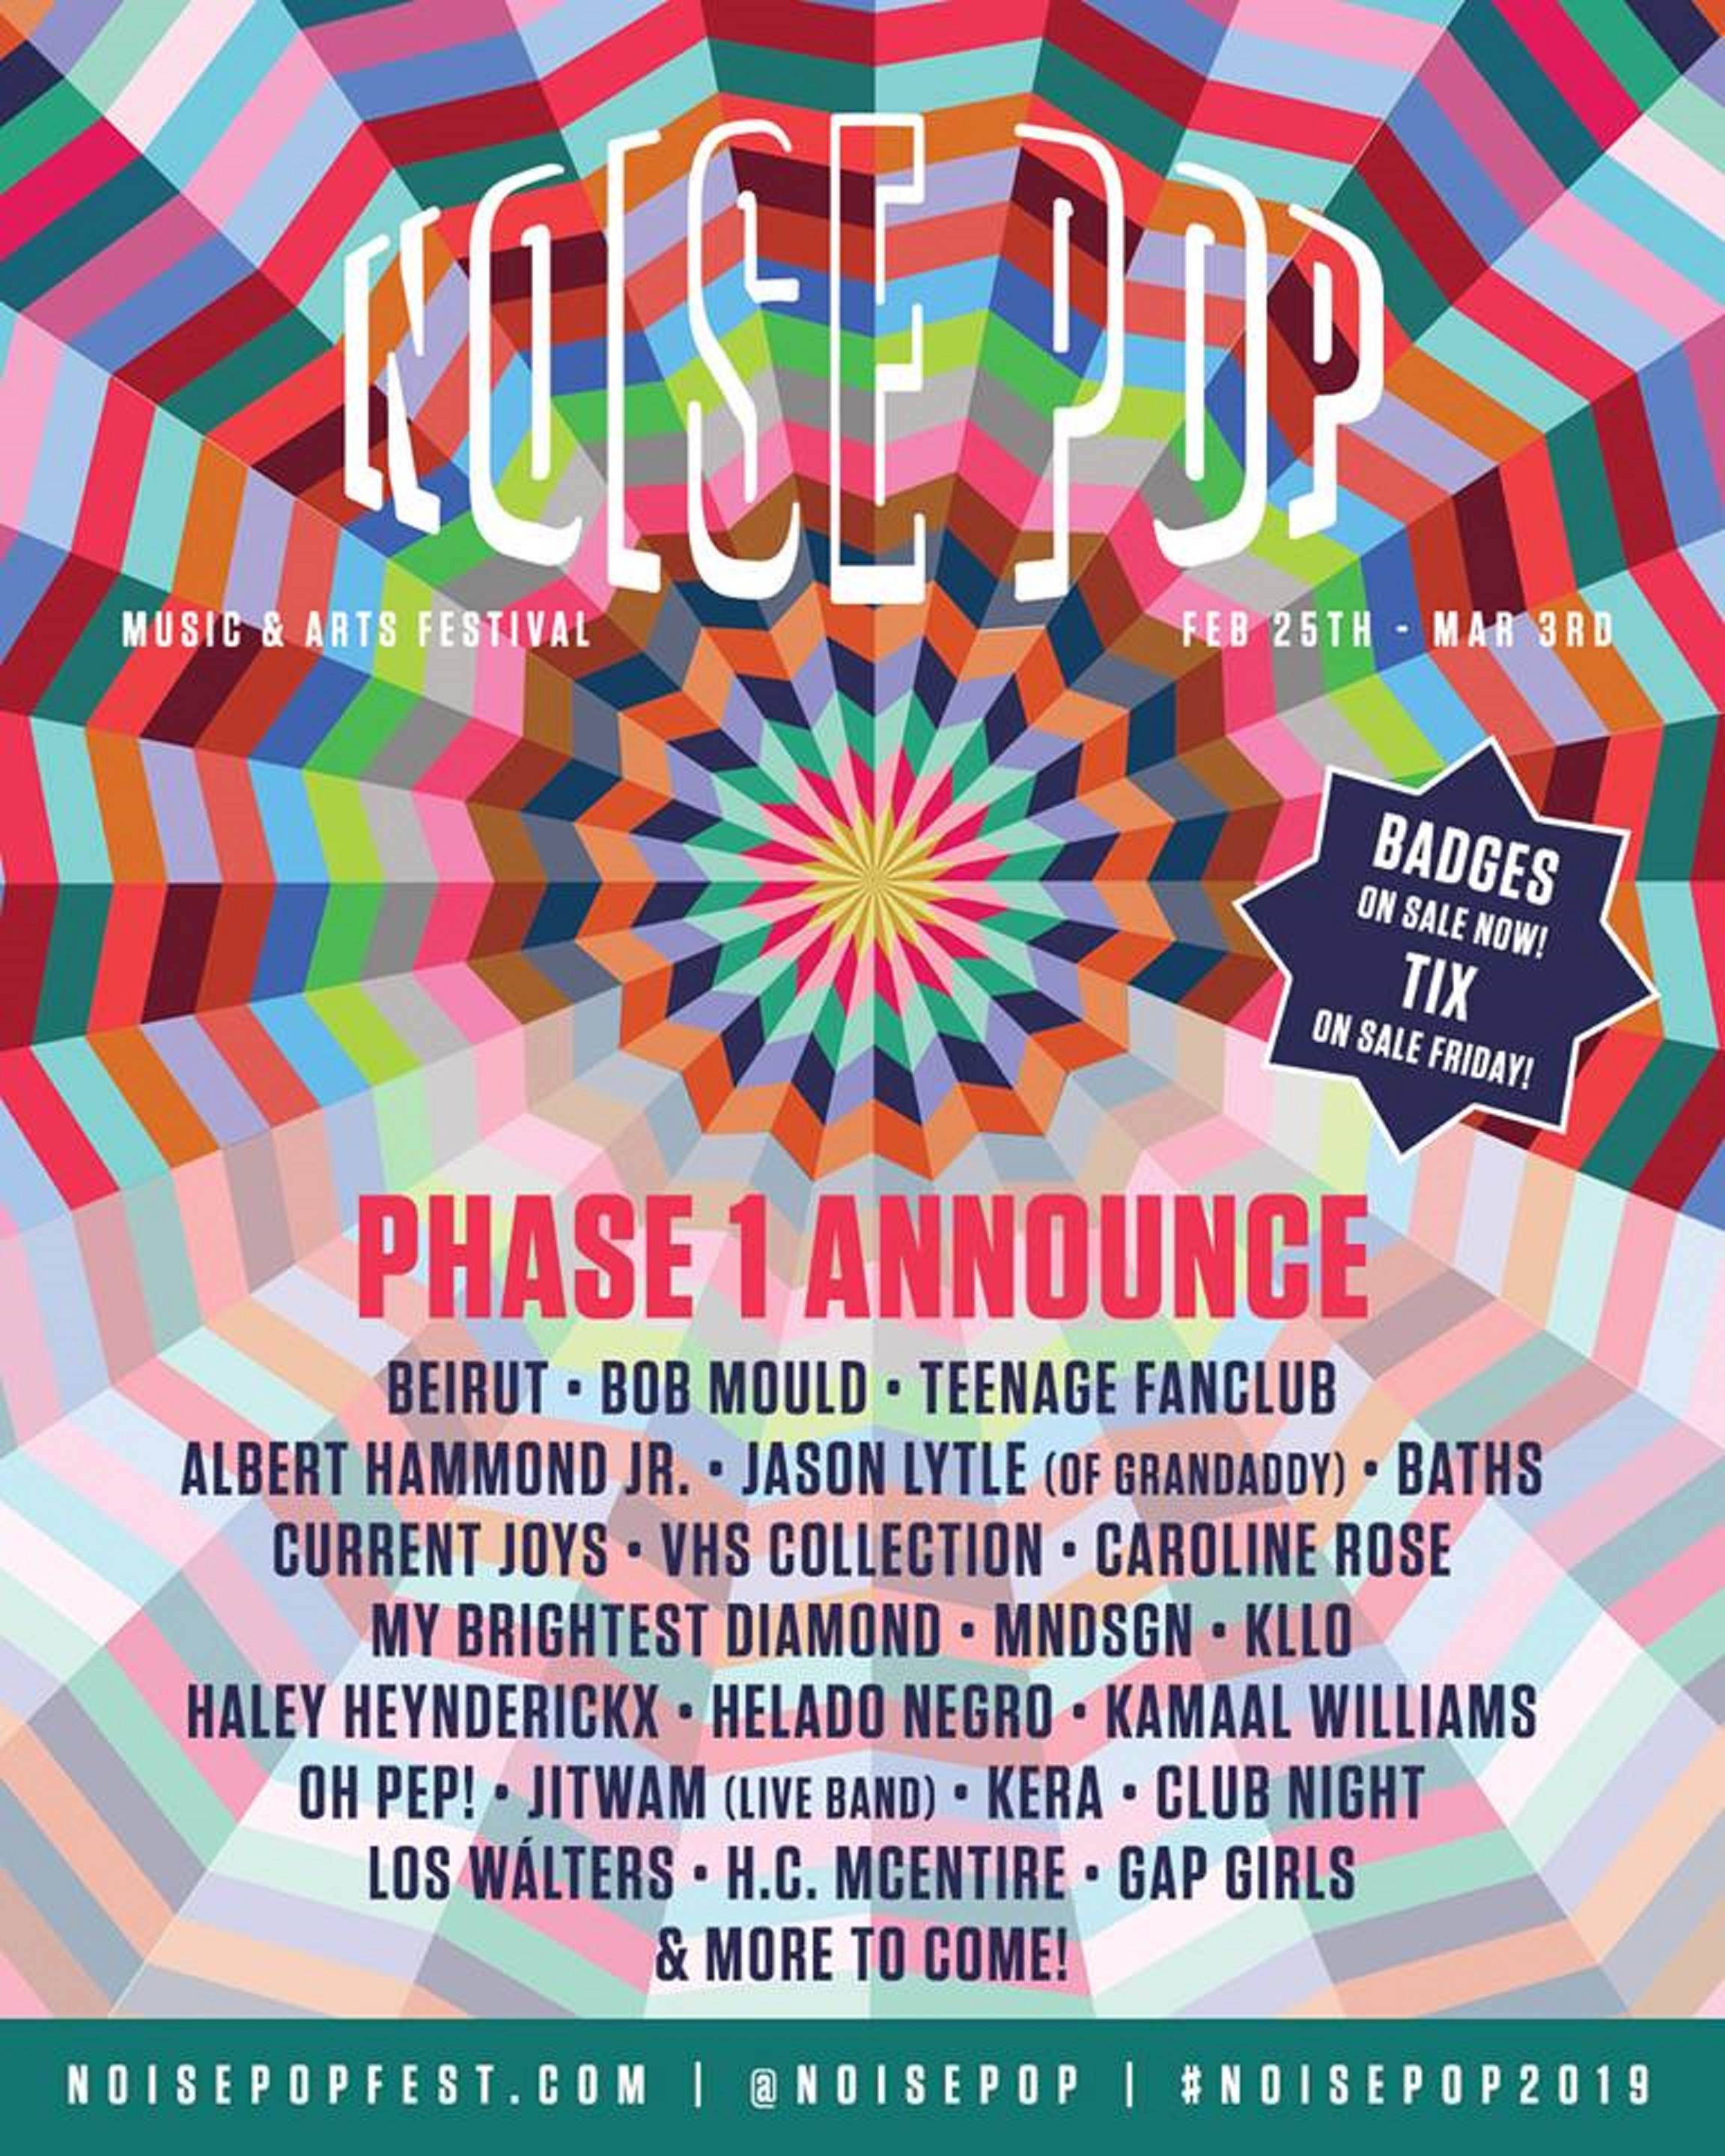 Noise Pop Fest 2019 Announces Initial Lineup